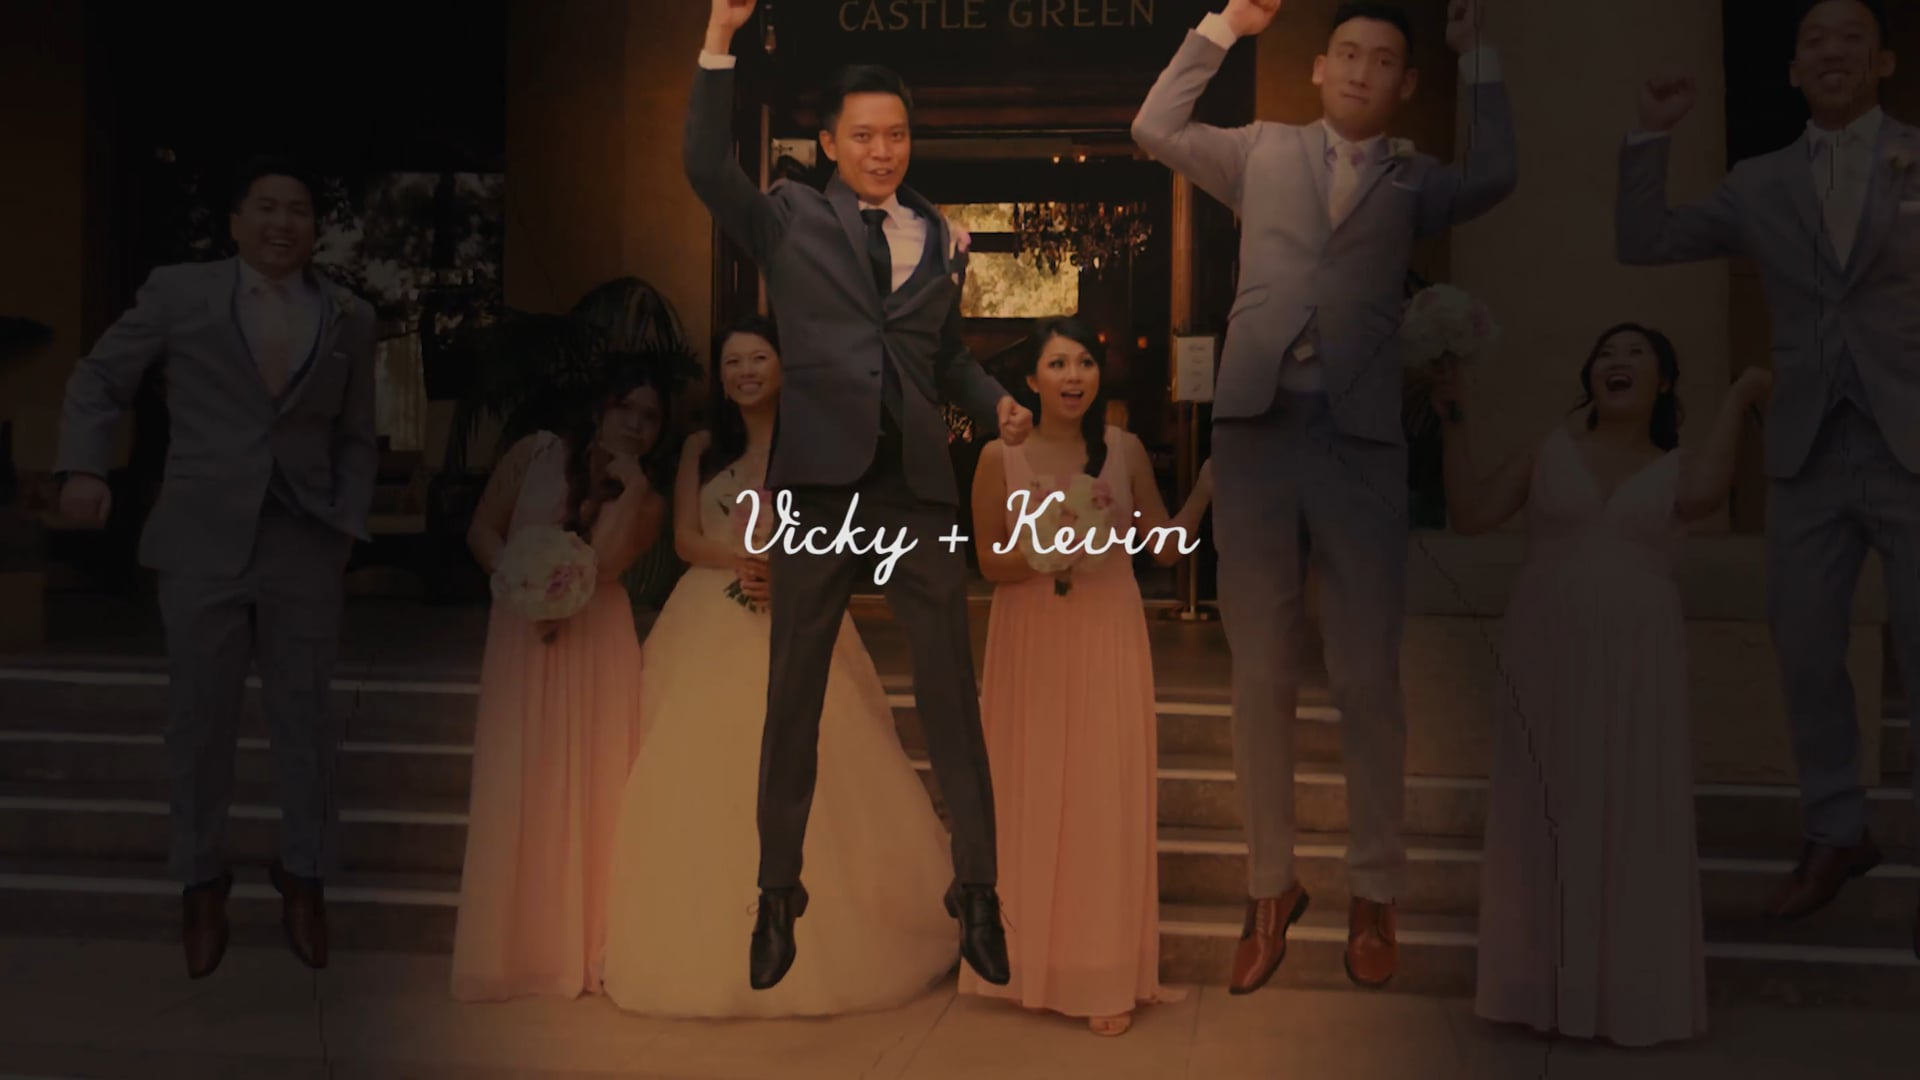 Vicky + Kevin Featurette Film